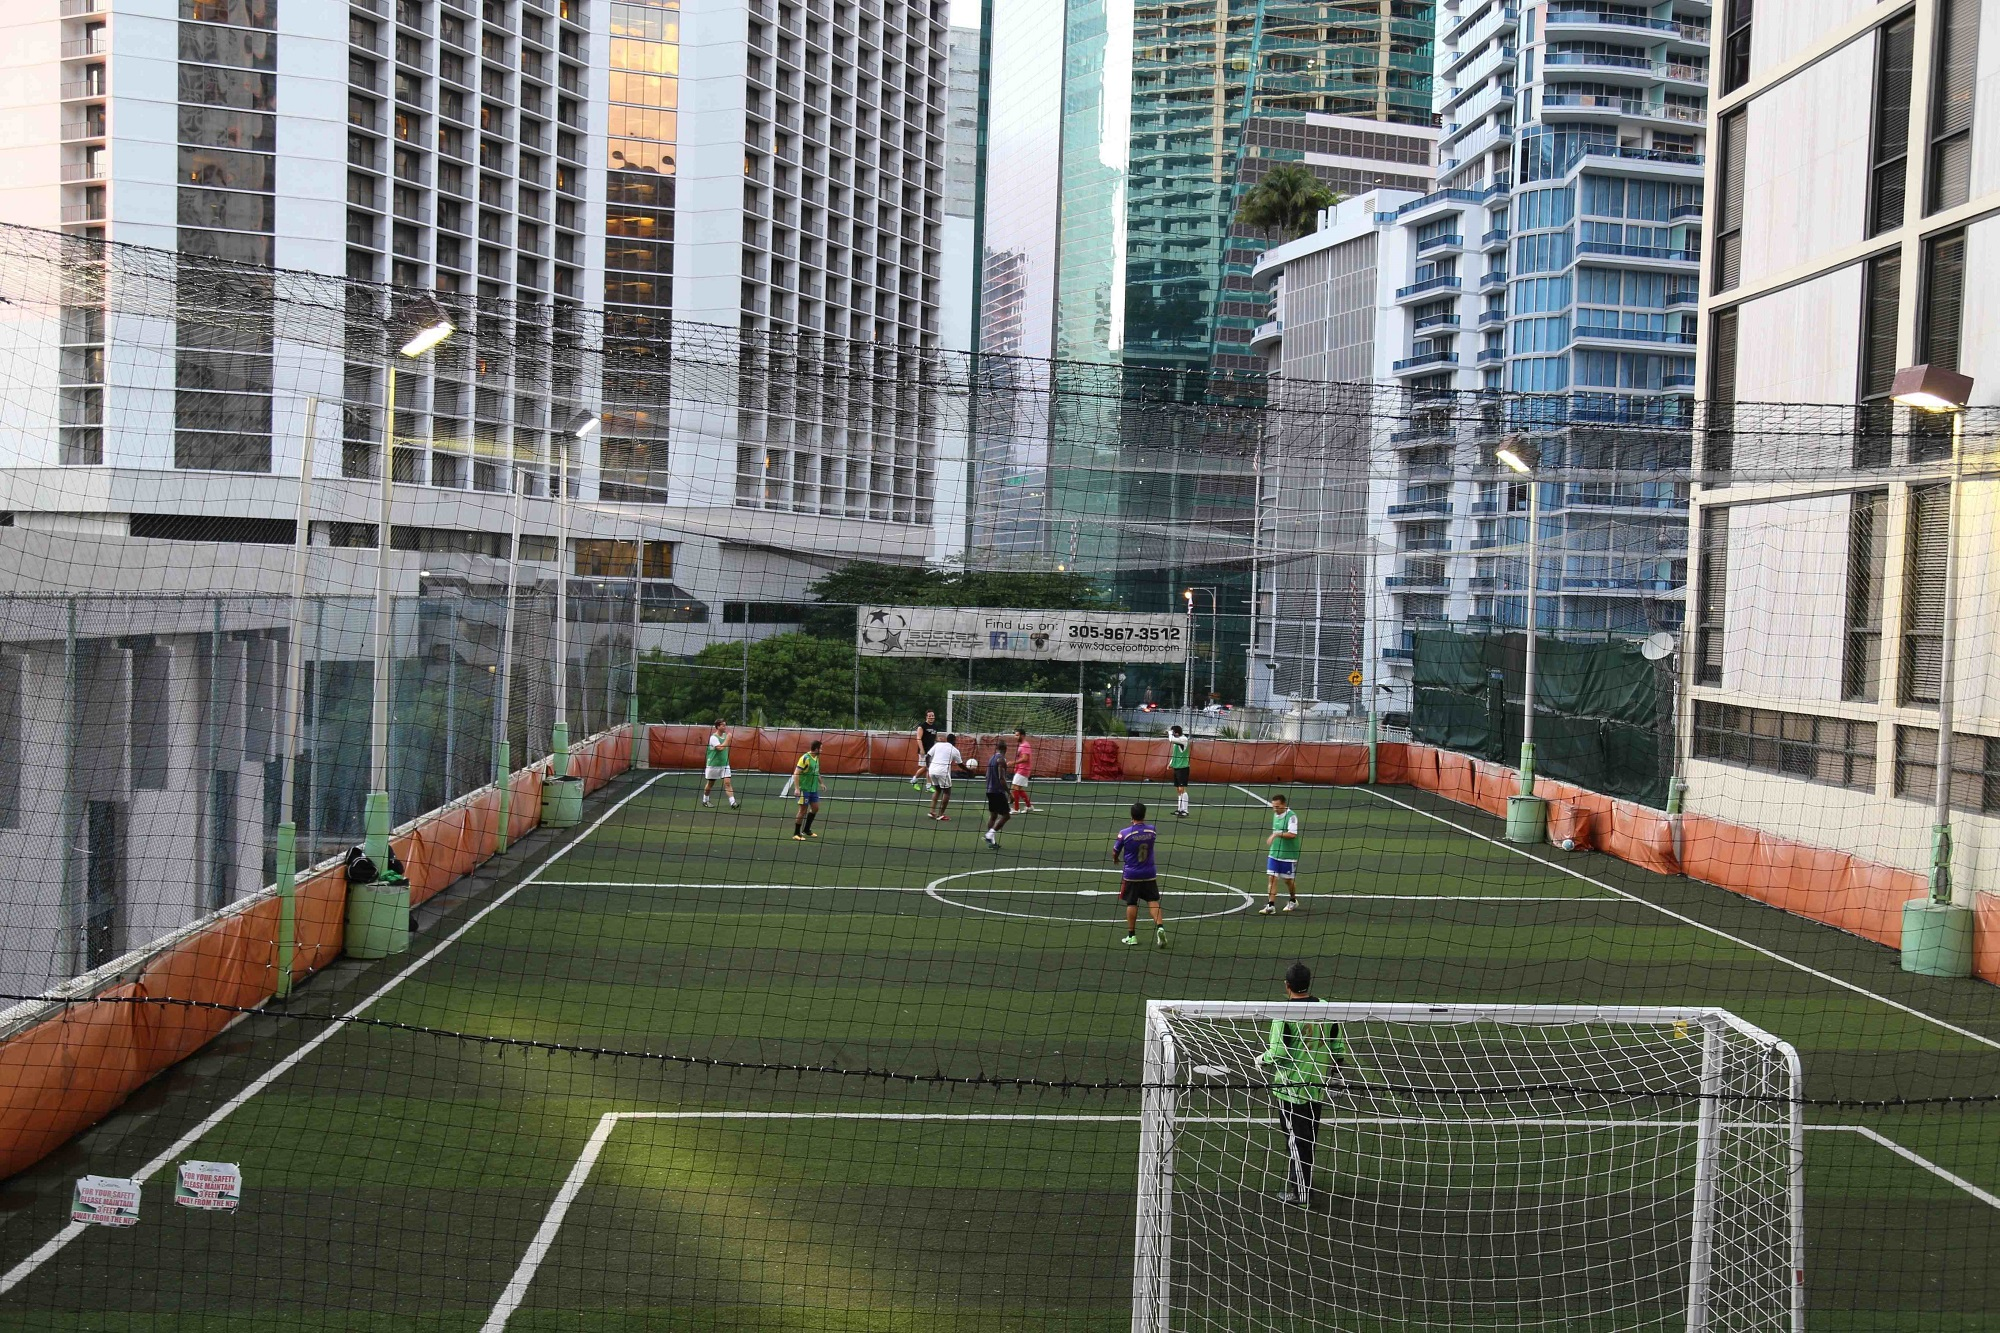 Brickell Soccer Rooftop - The Soccer Arena